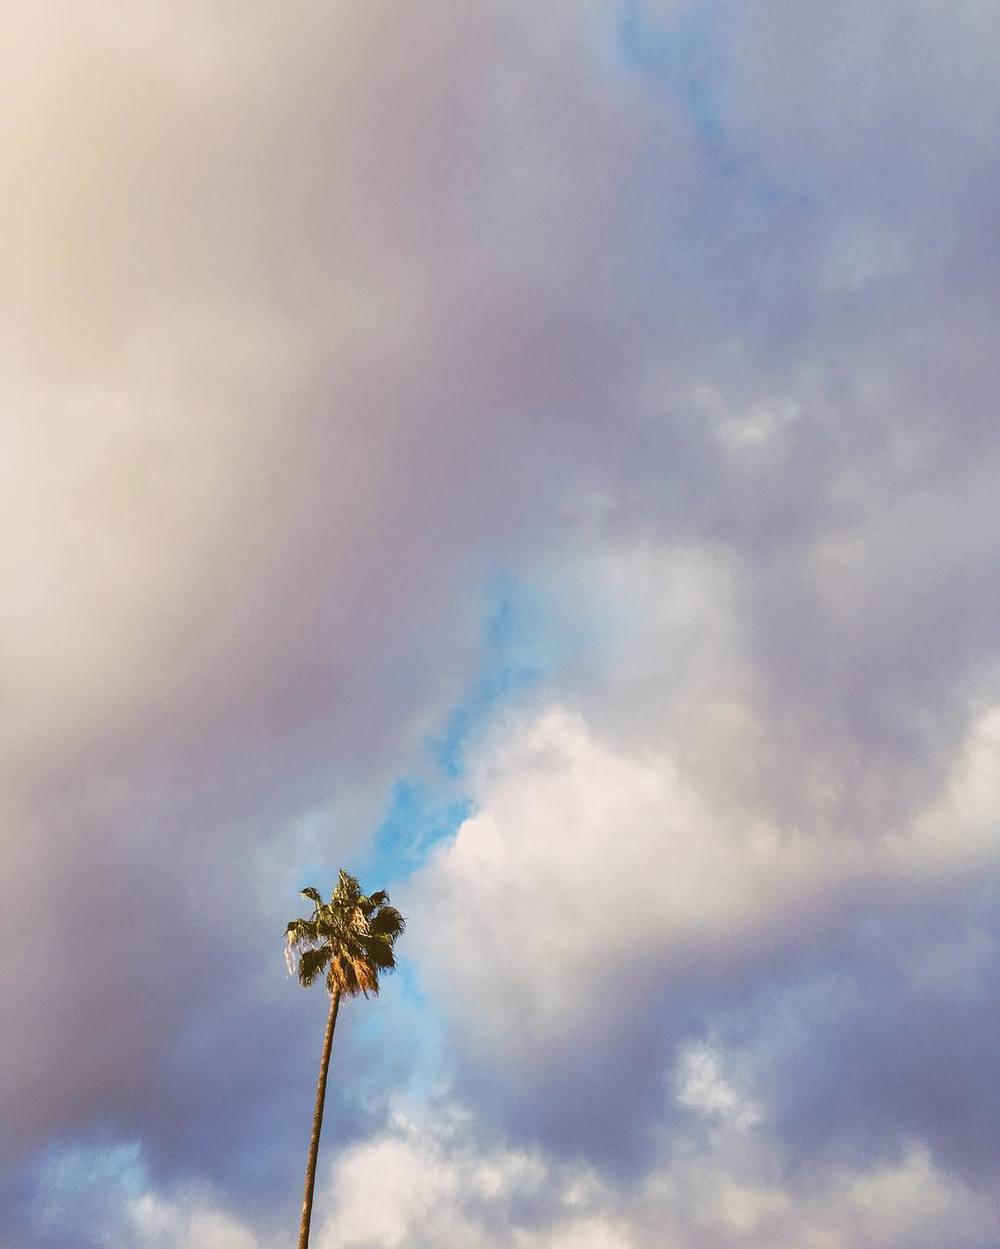 cottoncandy-on-a-stick-palm-palmtree-puffy-clouds-yum-53366-rainydays-sunshine-peeking-through_25731884835_o.jpg